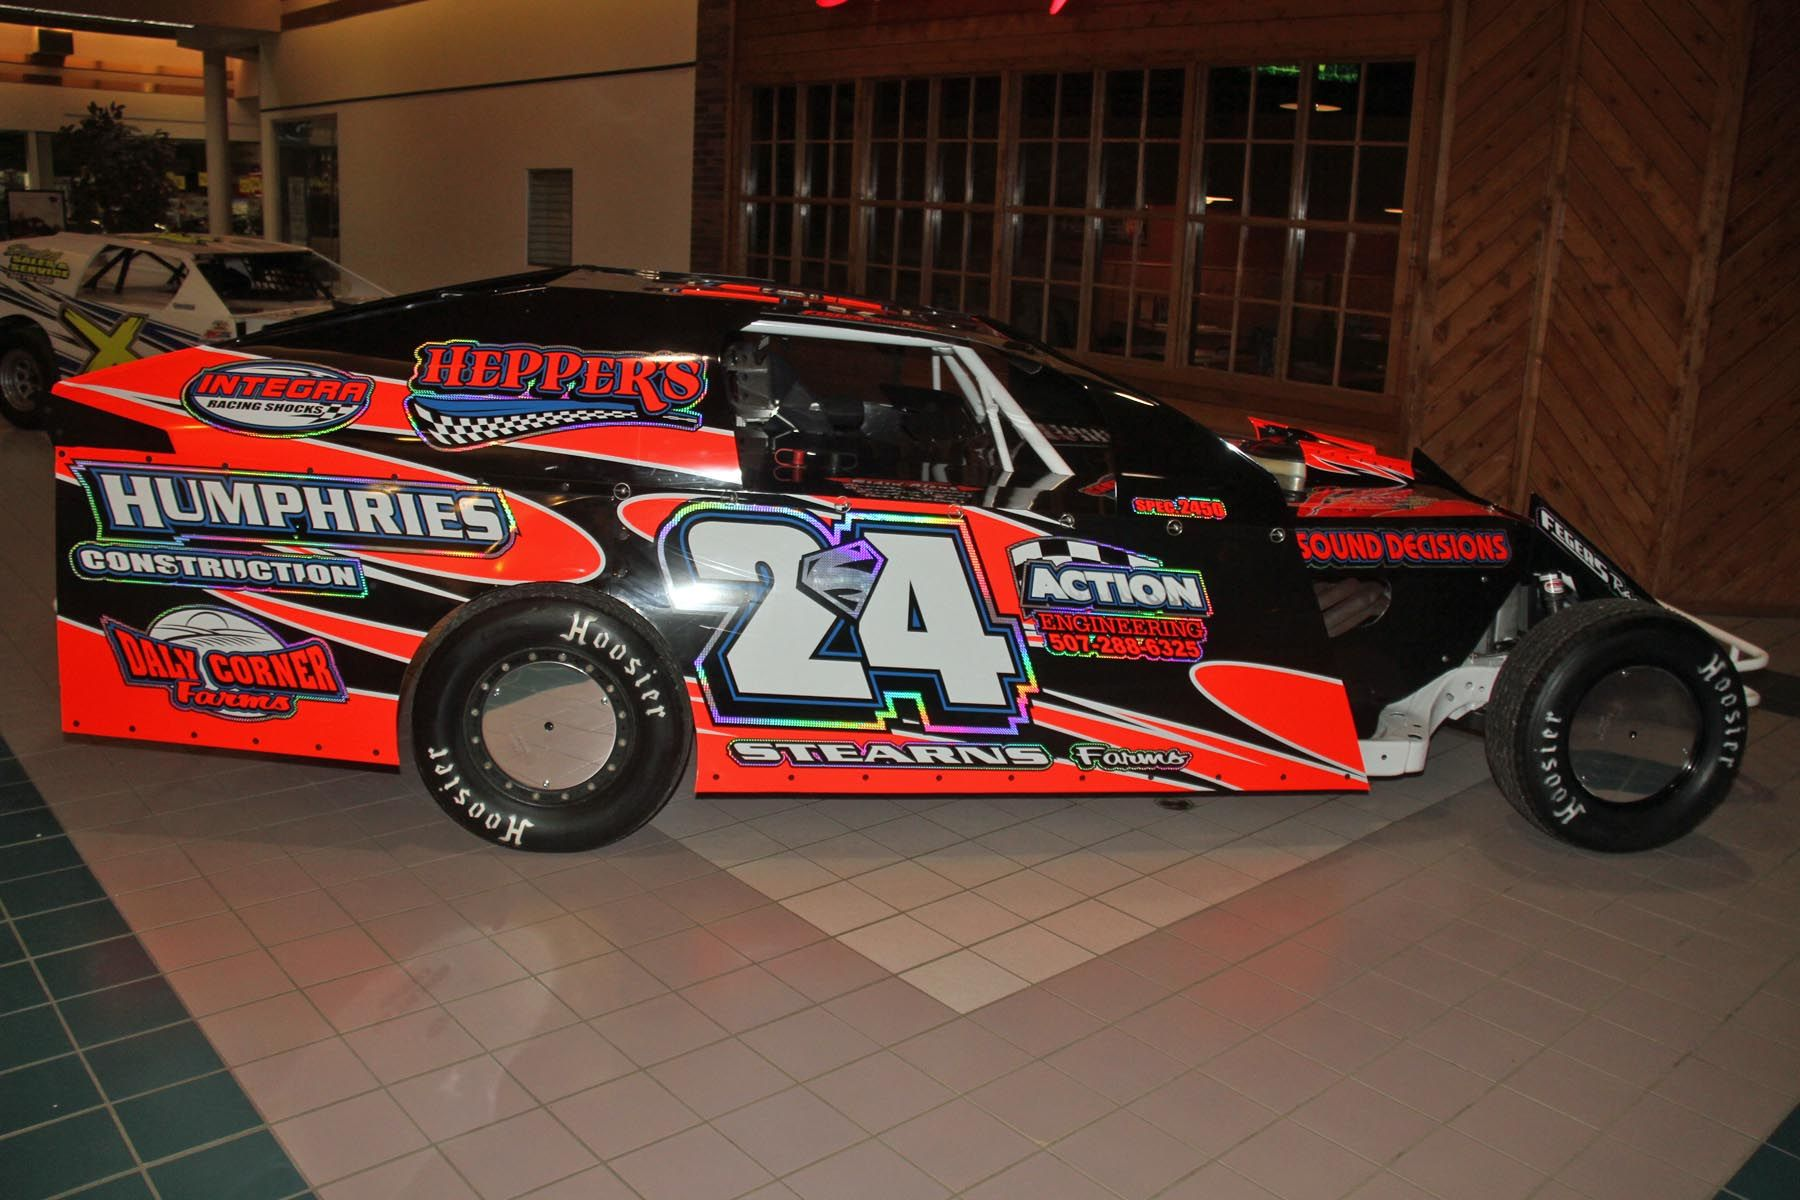 Street Stock Dirt Track Race Car Wraps - Year of Clean Water